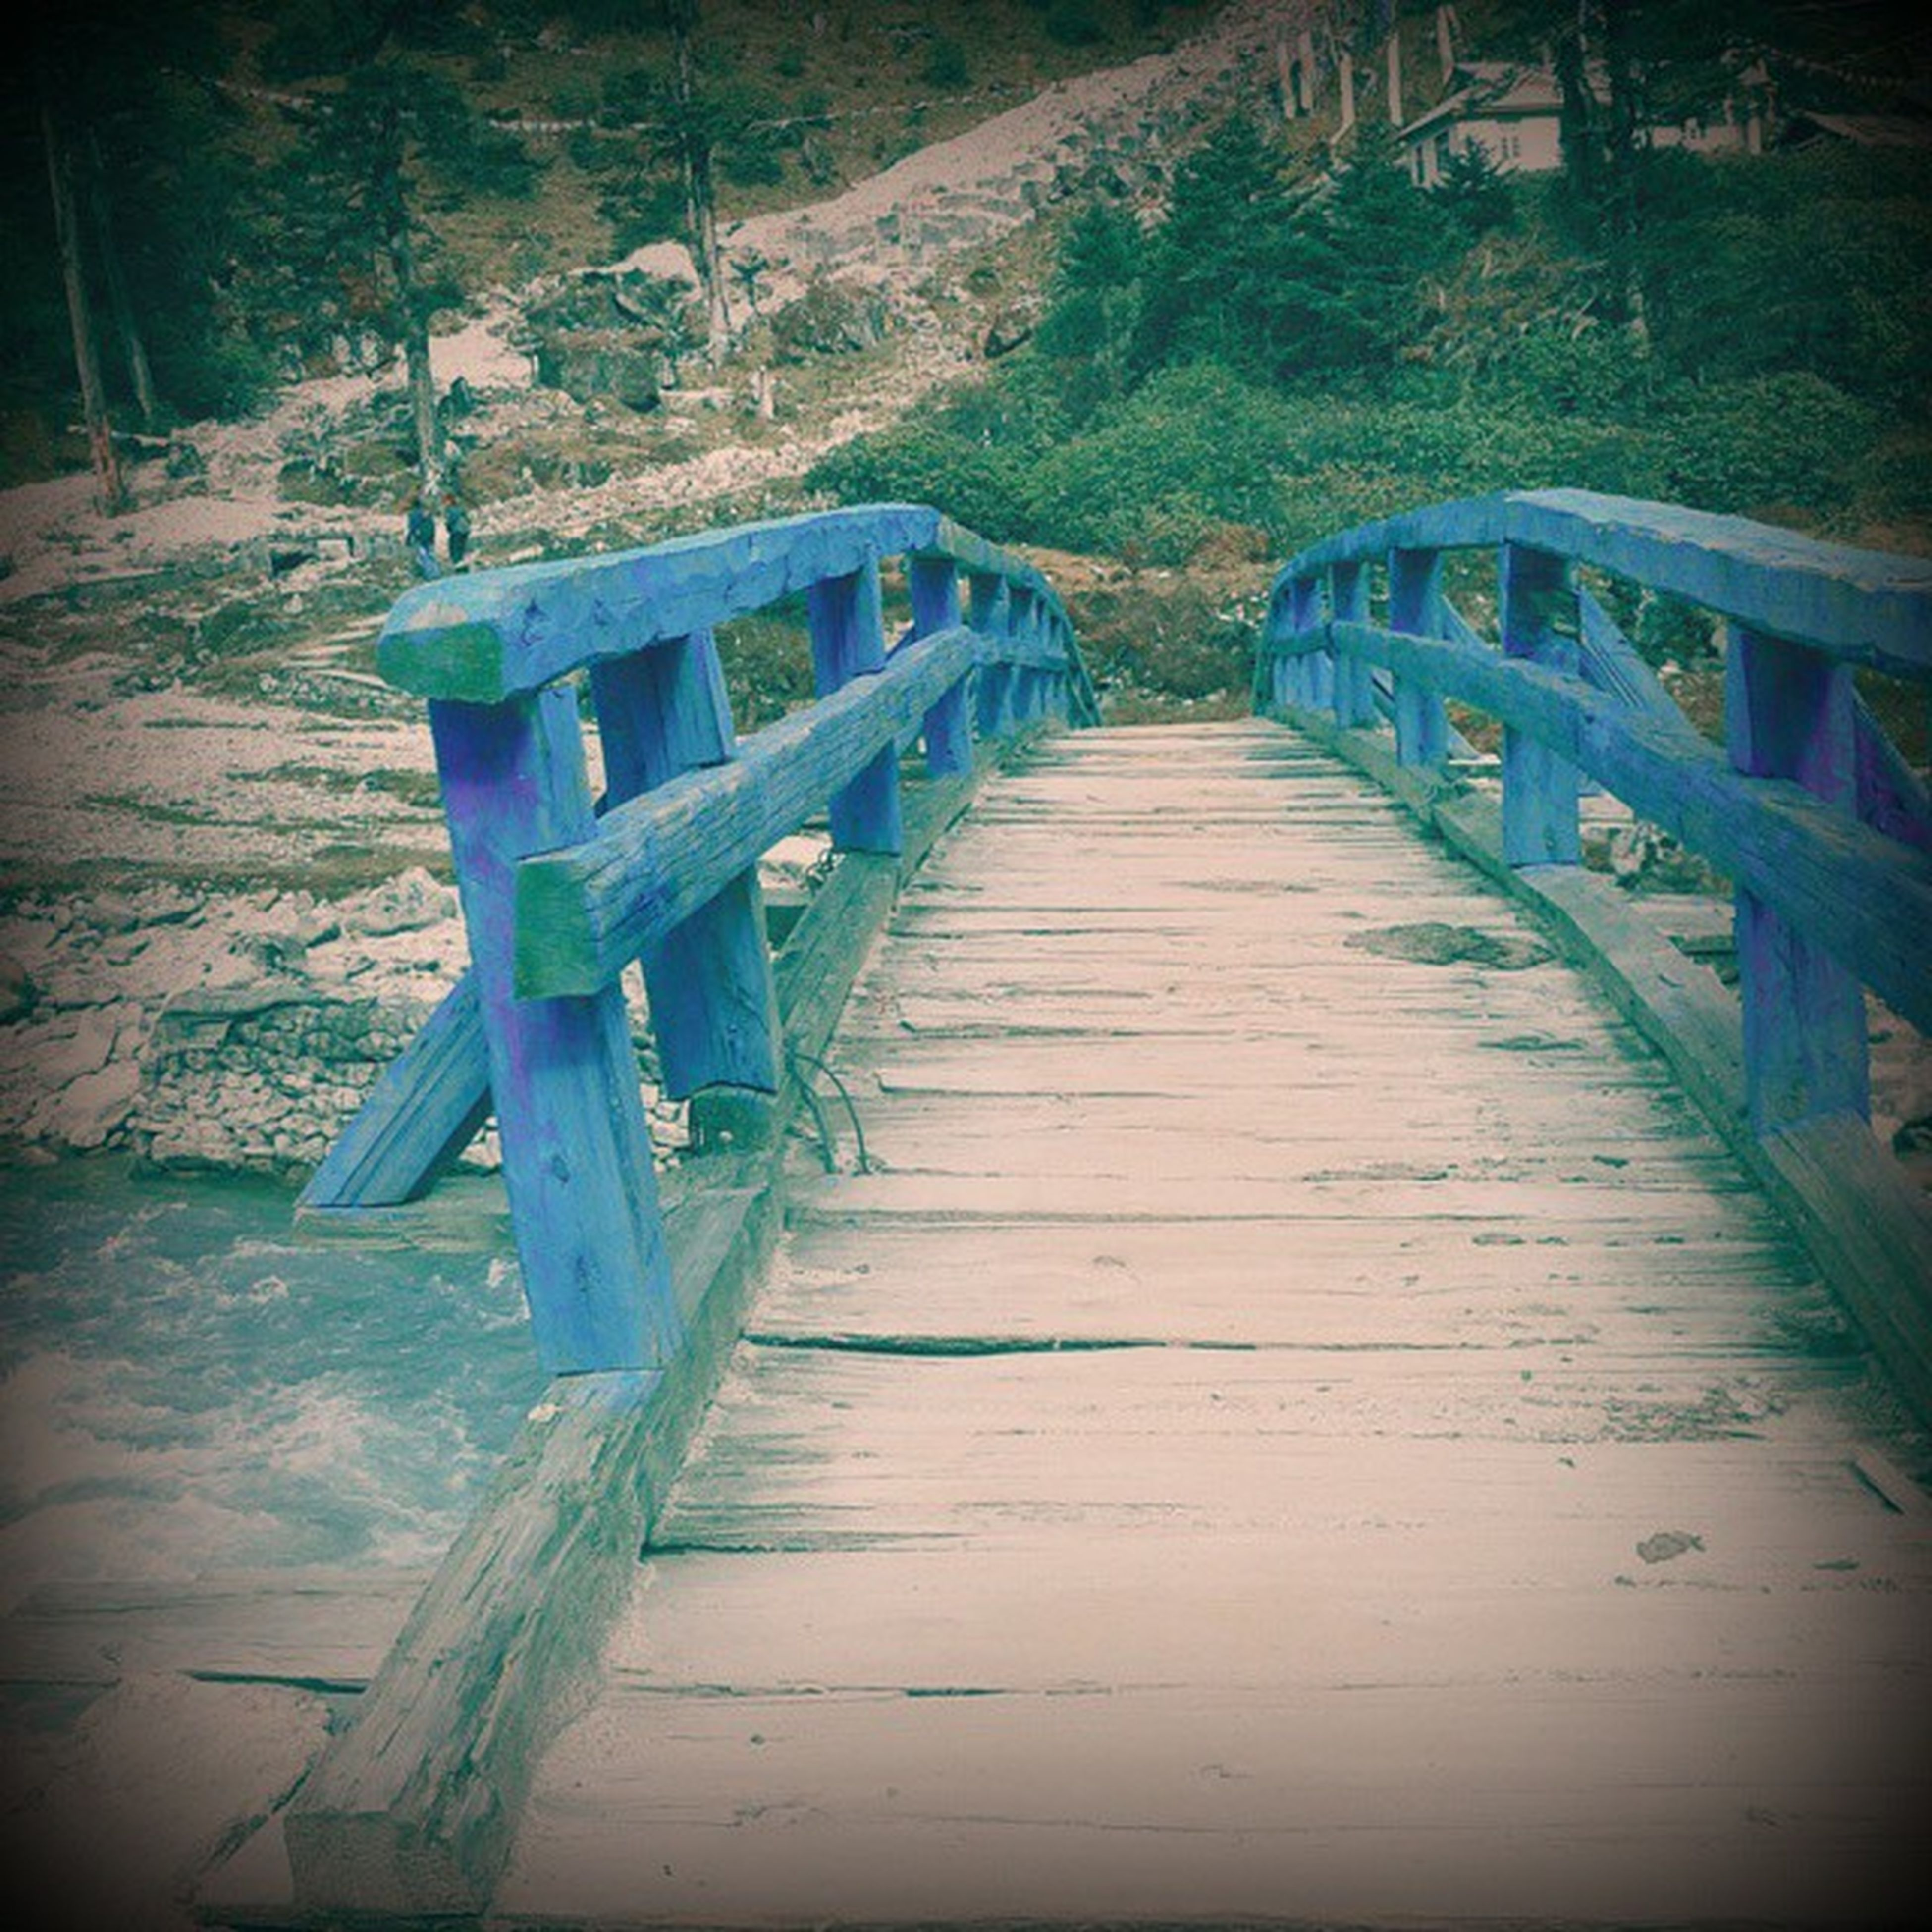 the way forward, wood - material, railing, footbridge, diminishing perspective, bridge - man made structure, boardwalk, tree, connection, tranquility, forest, vanishing point, transportation, wood, wooden, empty, nature, narrow, long, tranquil scene